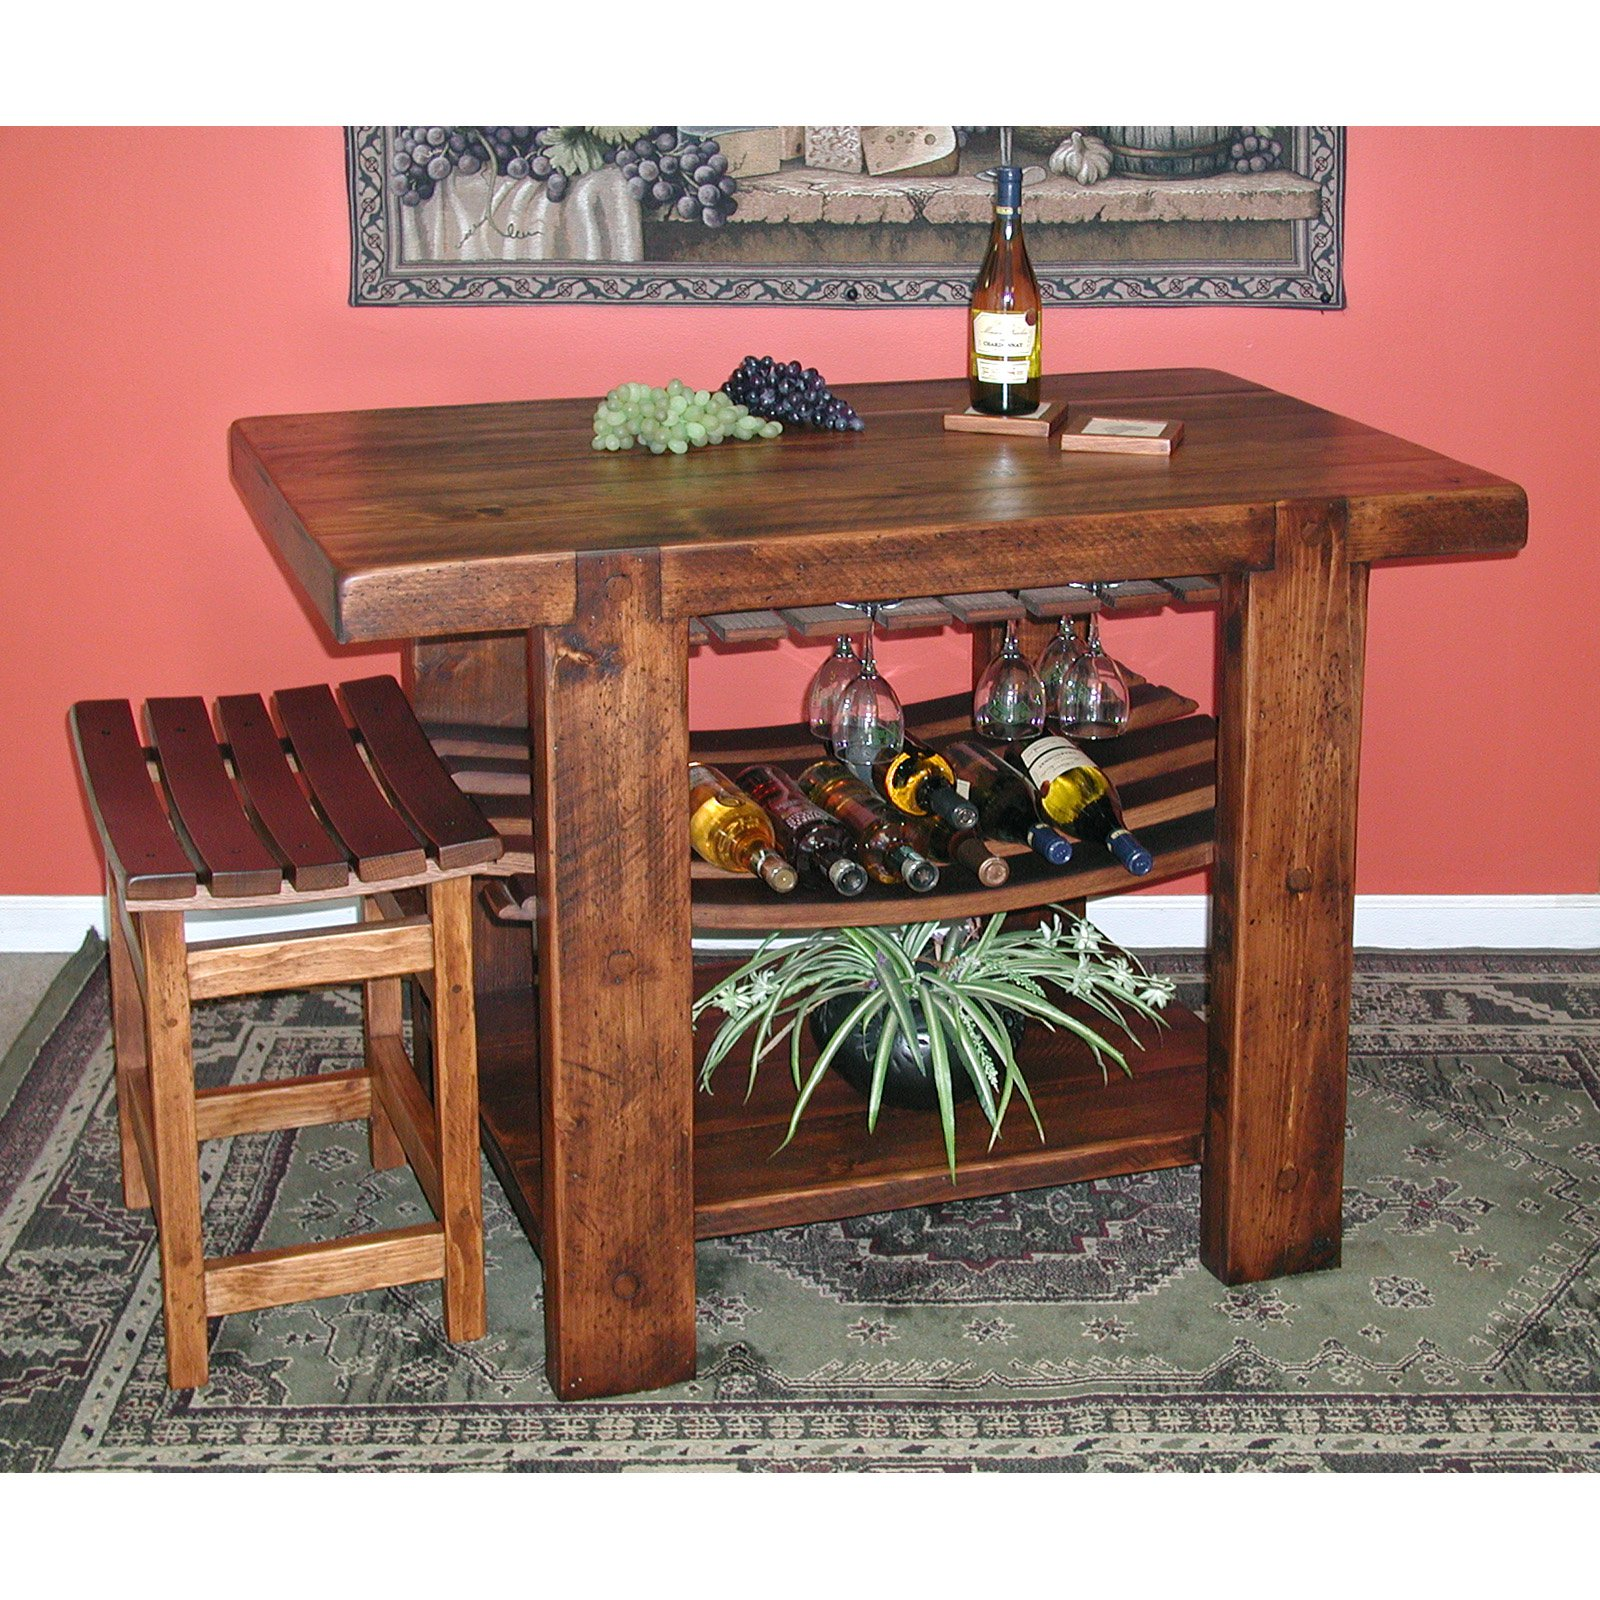 2 Day Designs Reclaimed Russian River Kitchen Island